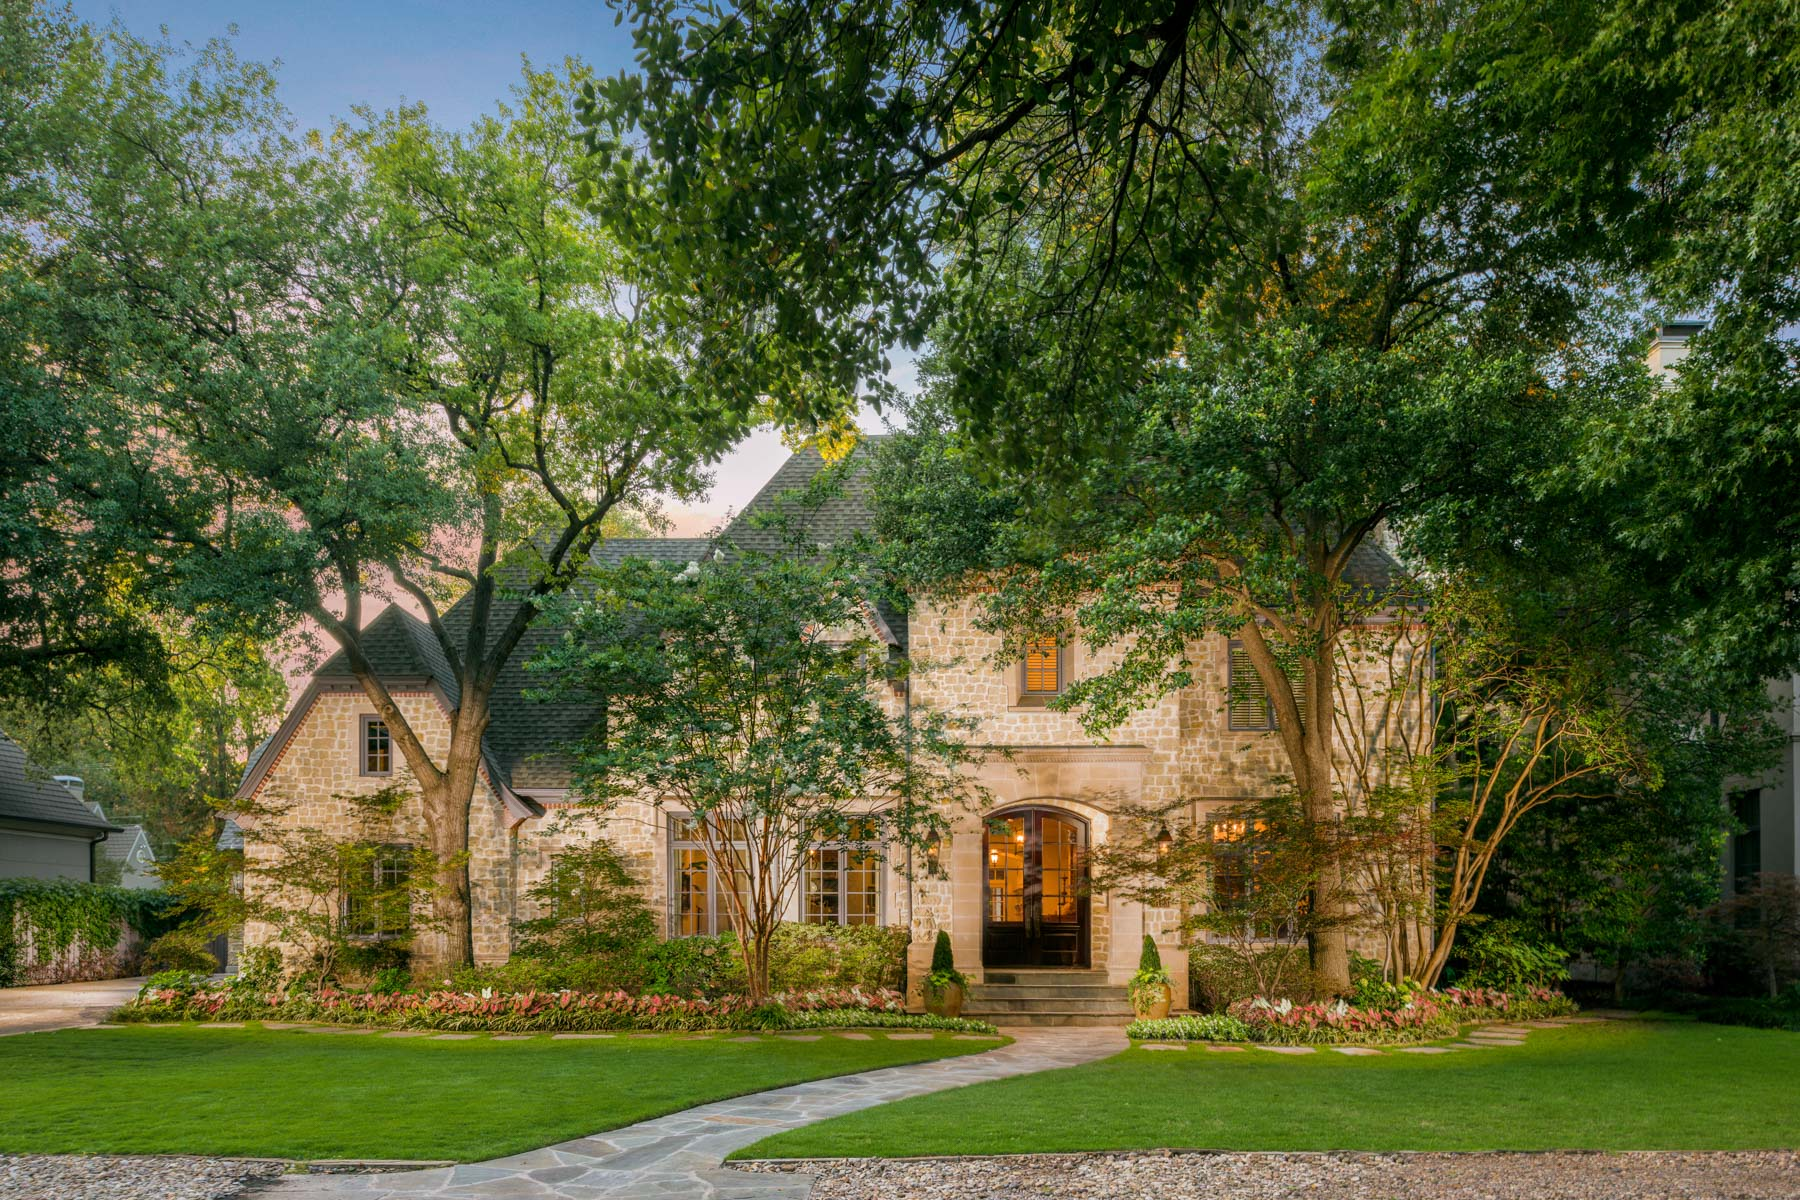 Single Family Home for Sale at Elegant French Normandy 6123 Mimosa Ln Dallas, Texas, 75230 United States